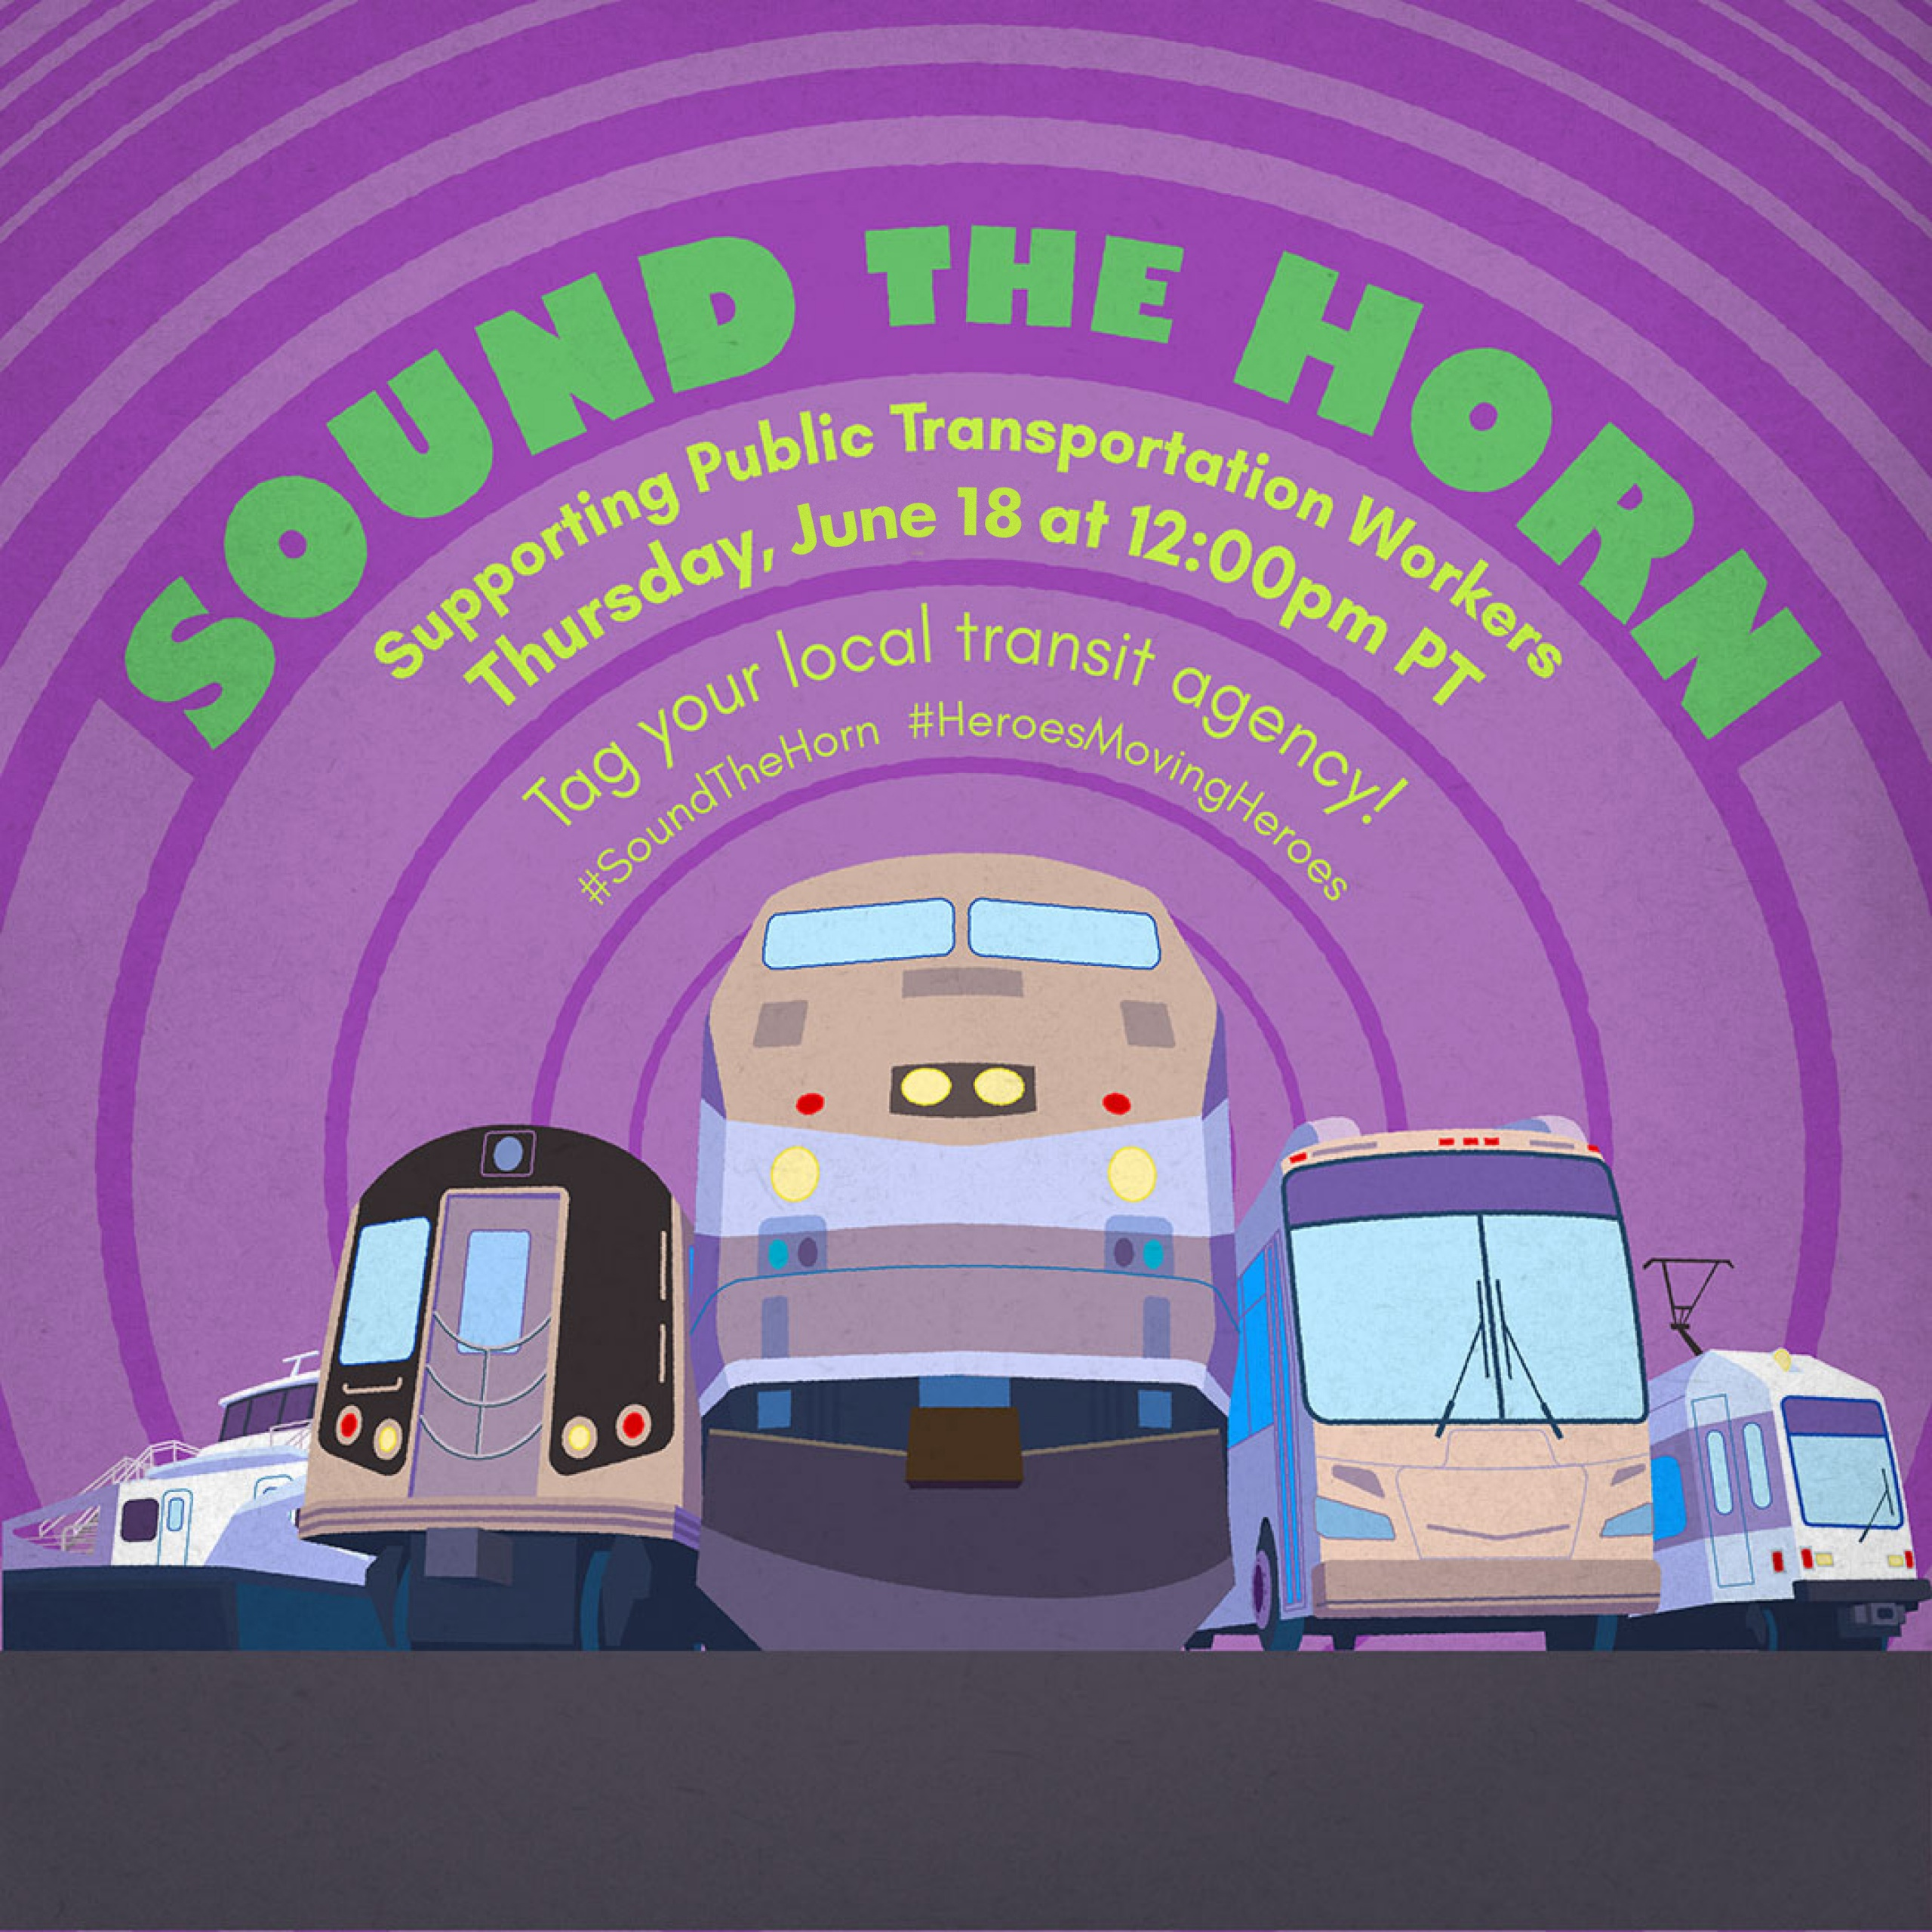 Sound the Horn Supporting Public Transportation Workers